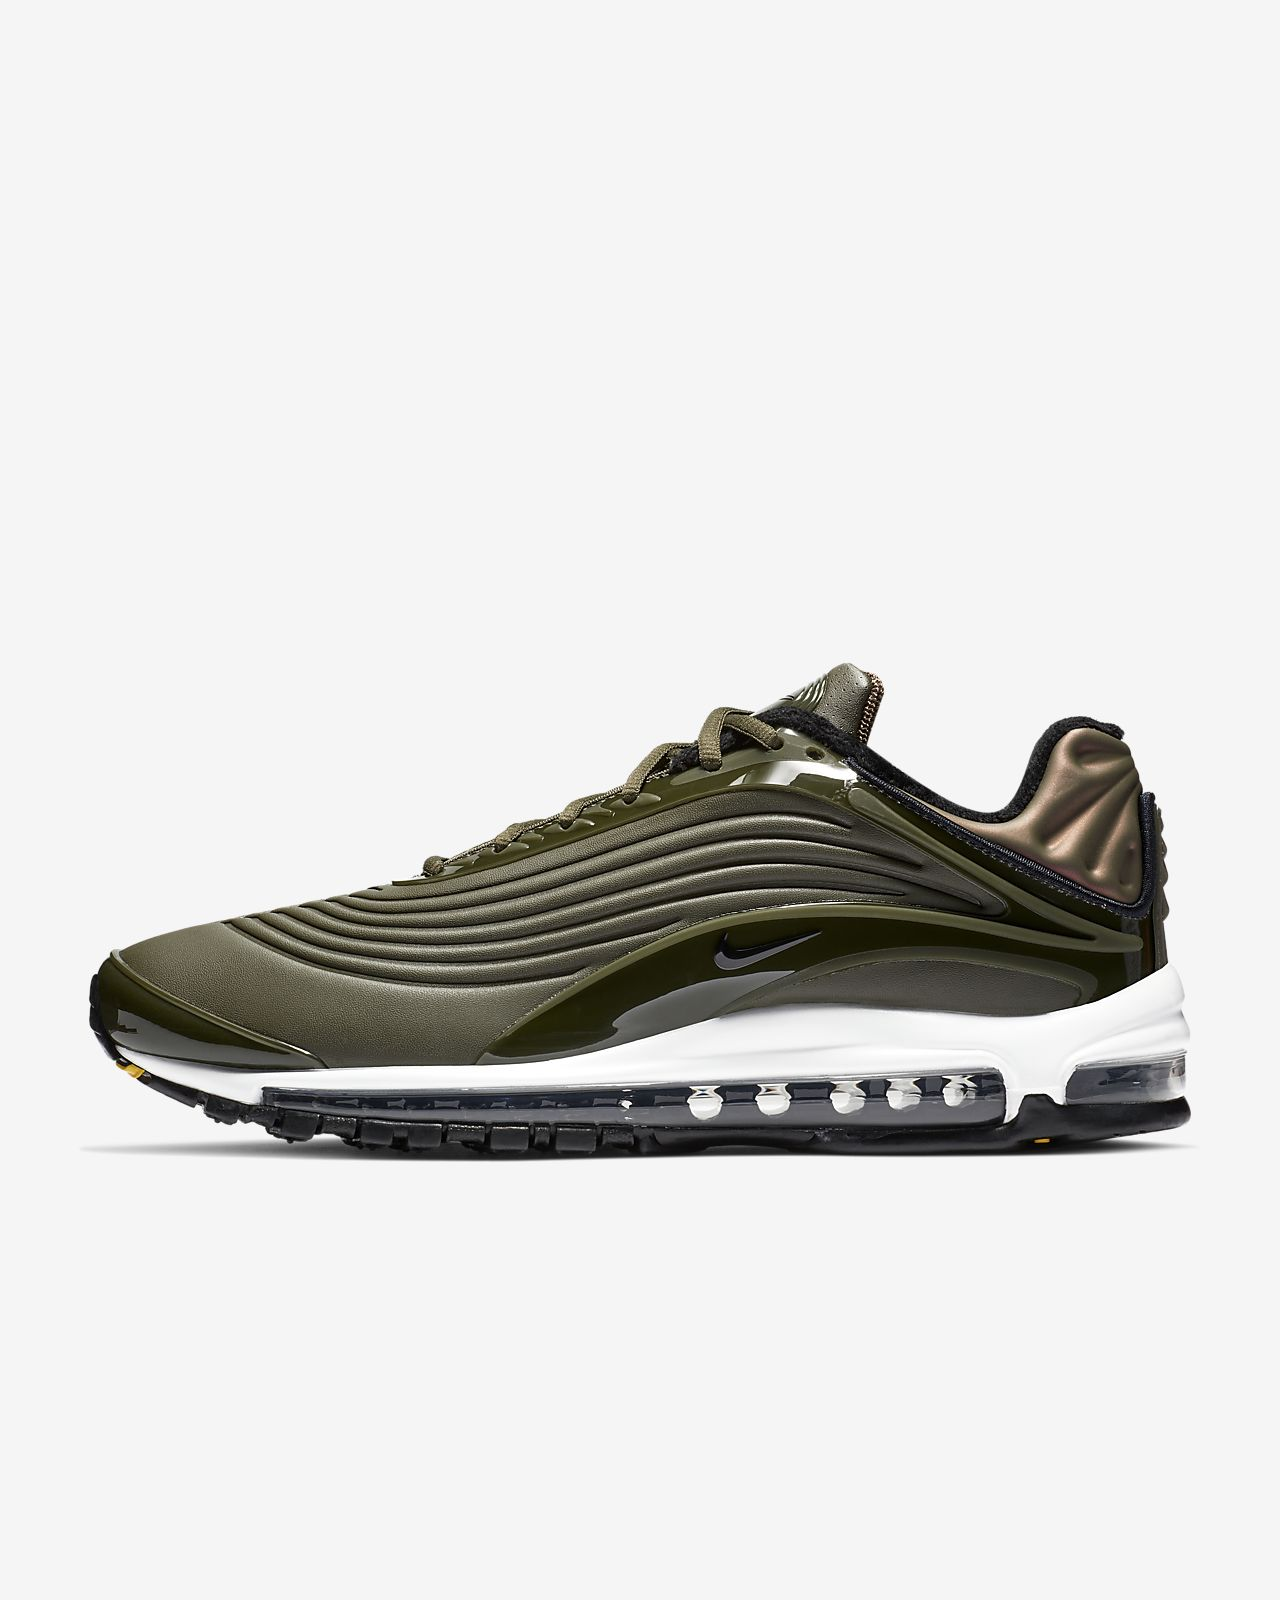 Nike Air Max Deluxe SE Men's Shoe